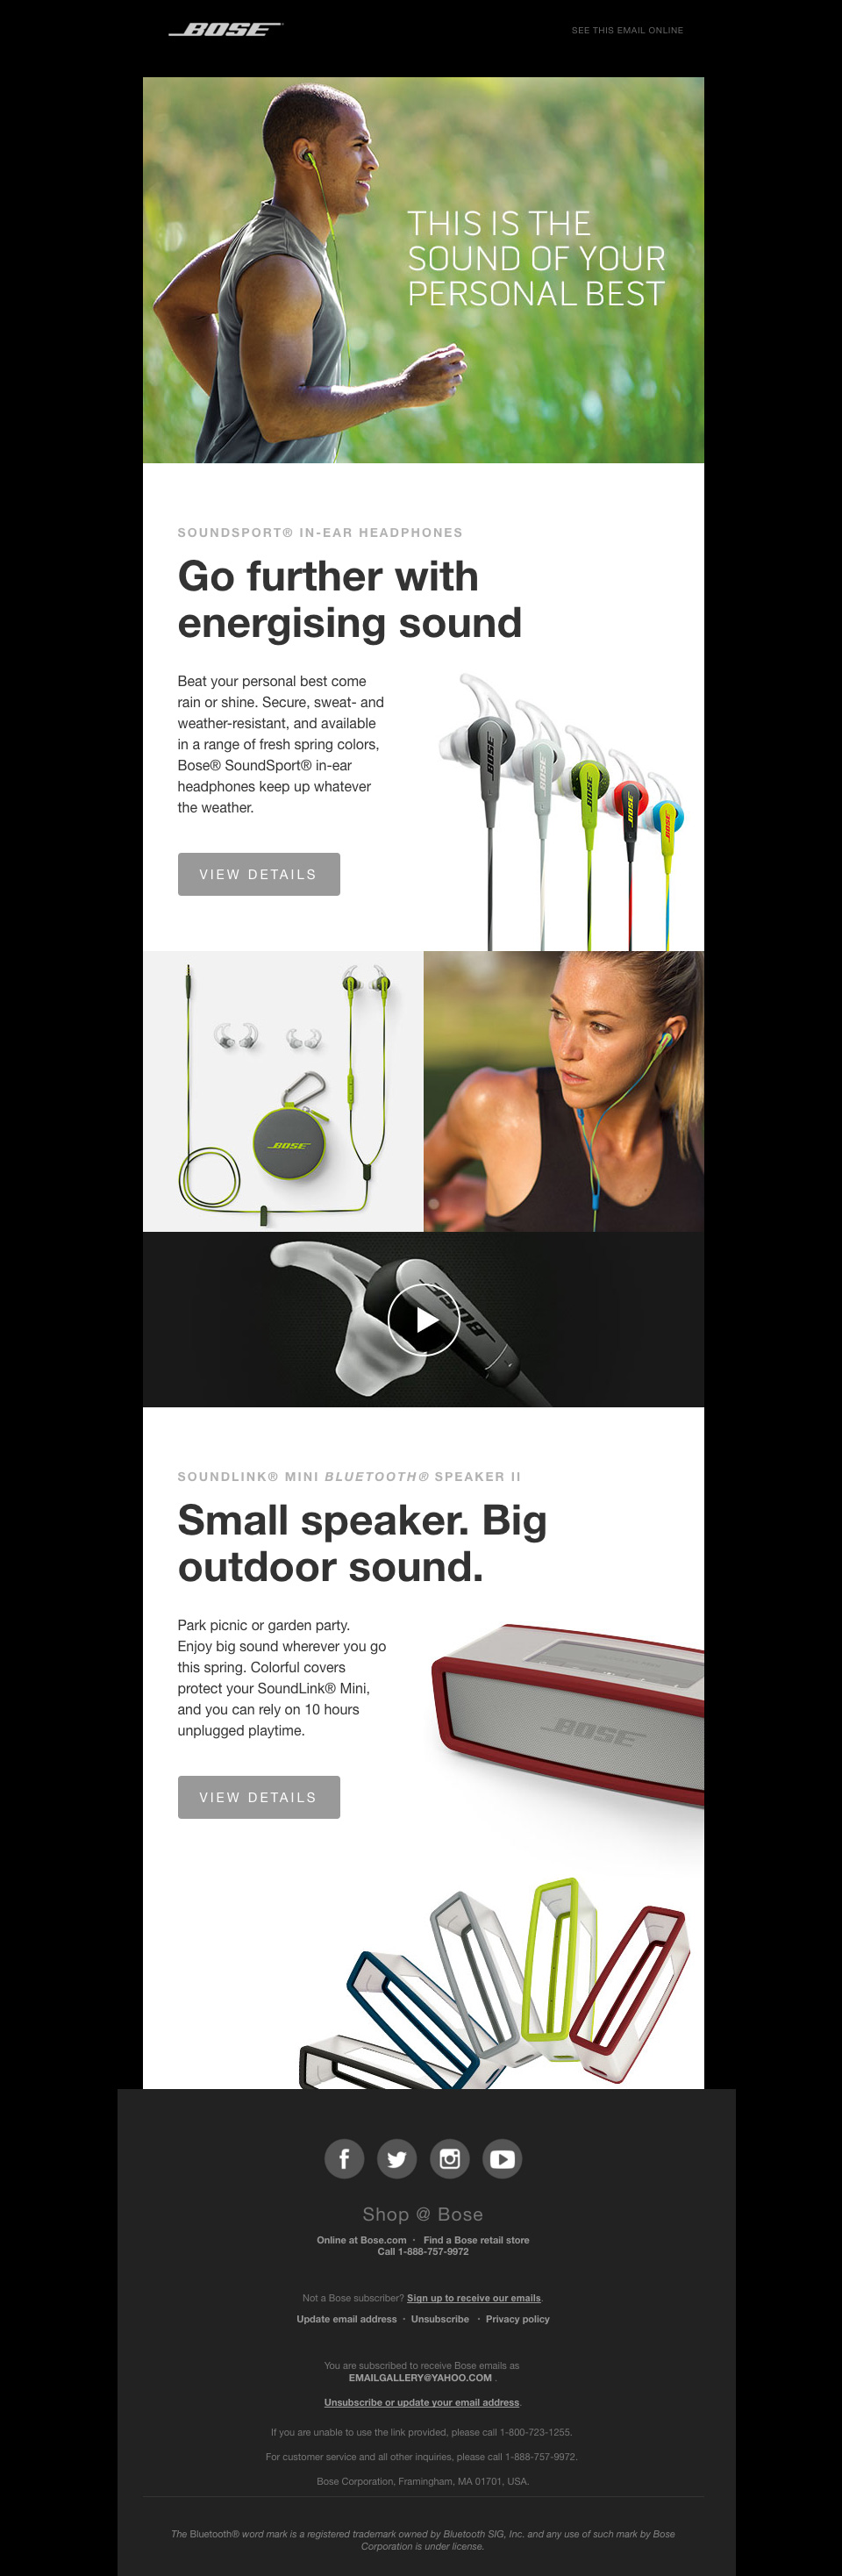 bose-newsletter